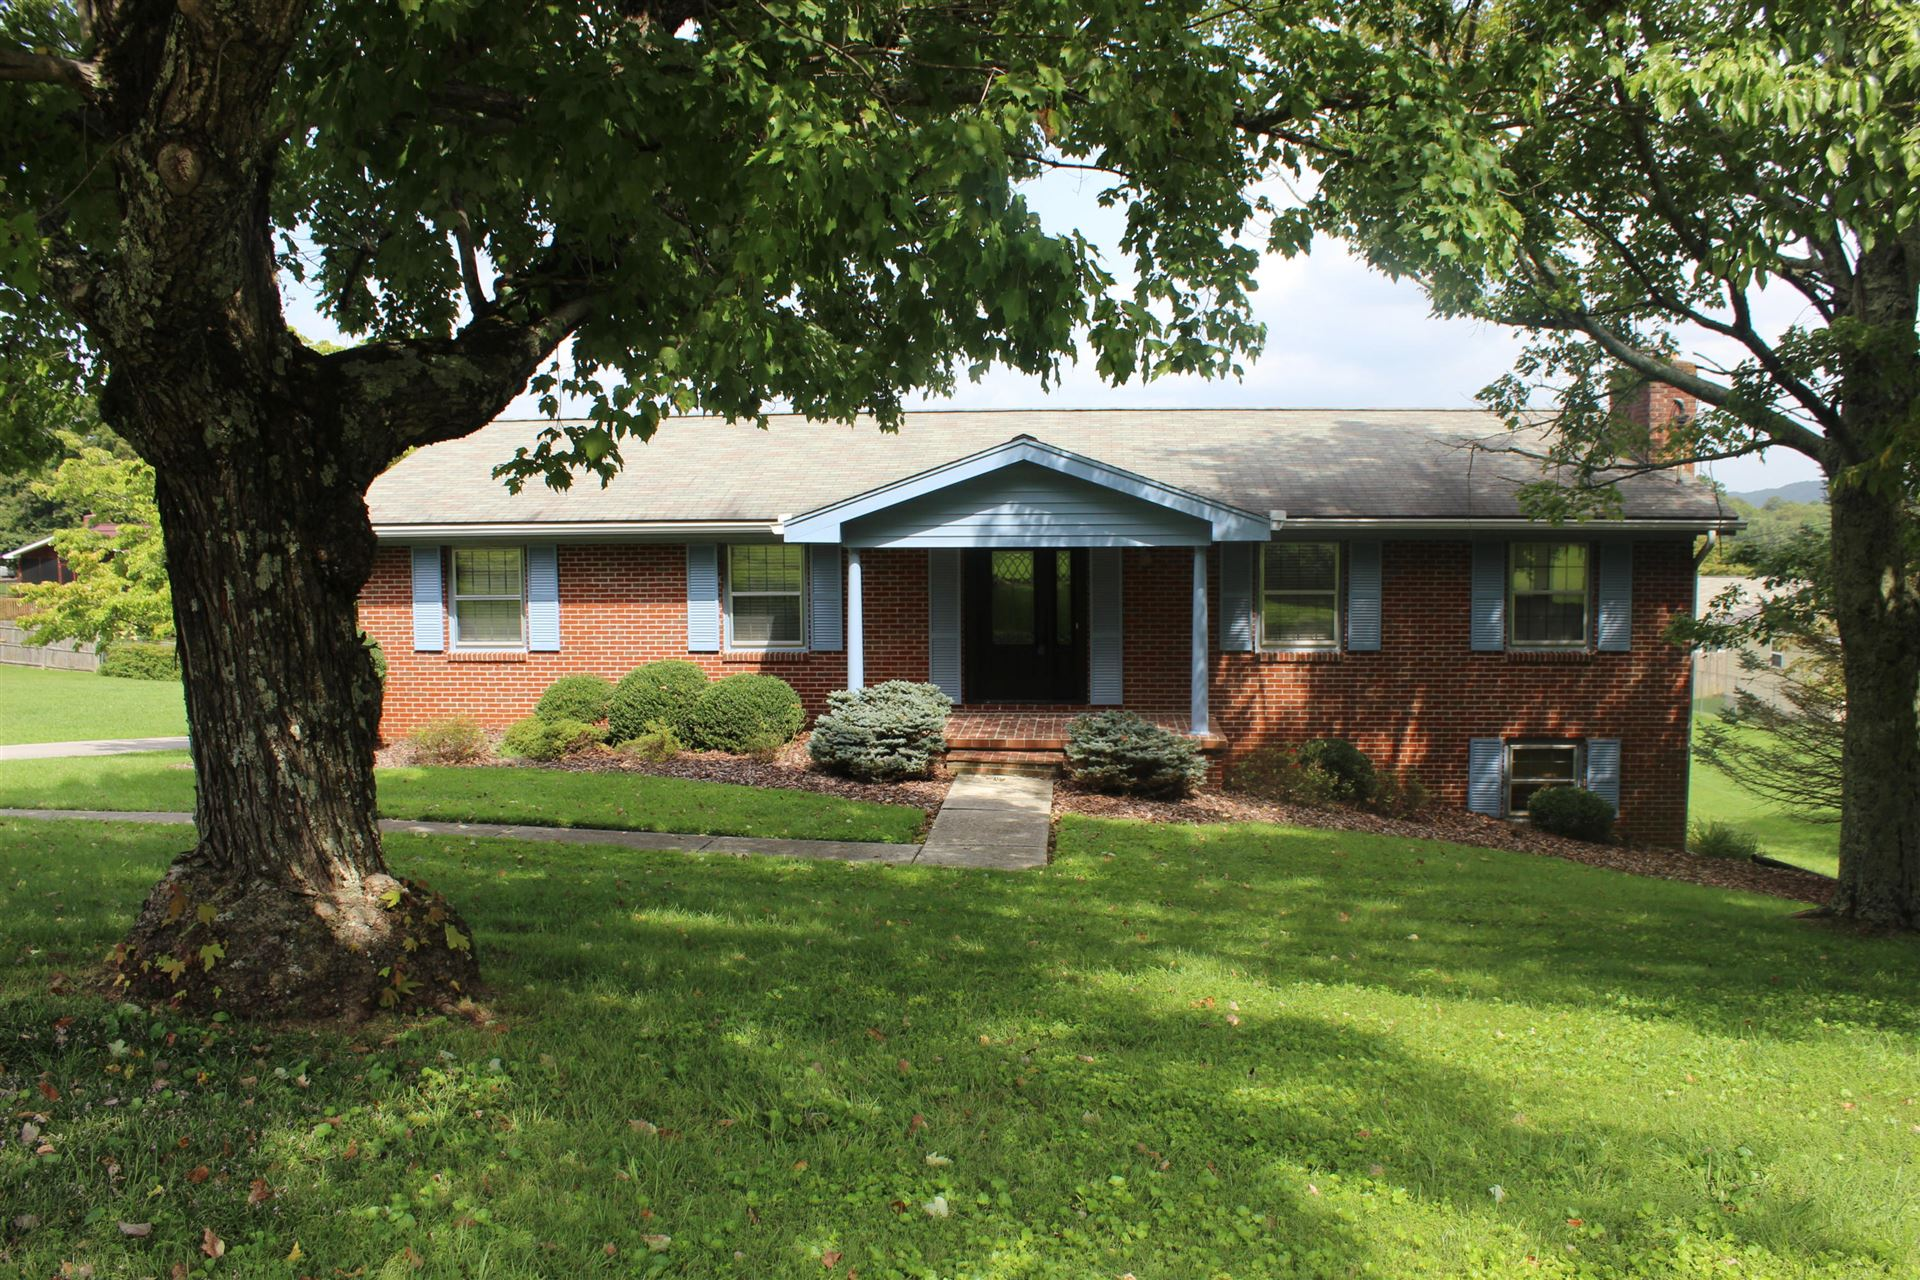 Photo of 8224 Spruceland Rd, Powell, TN 37849 (MLS # 1128590)